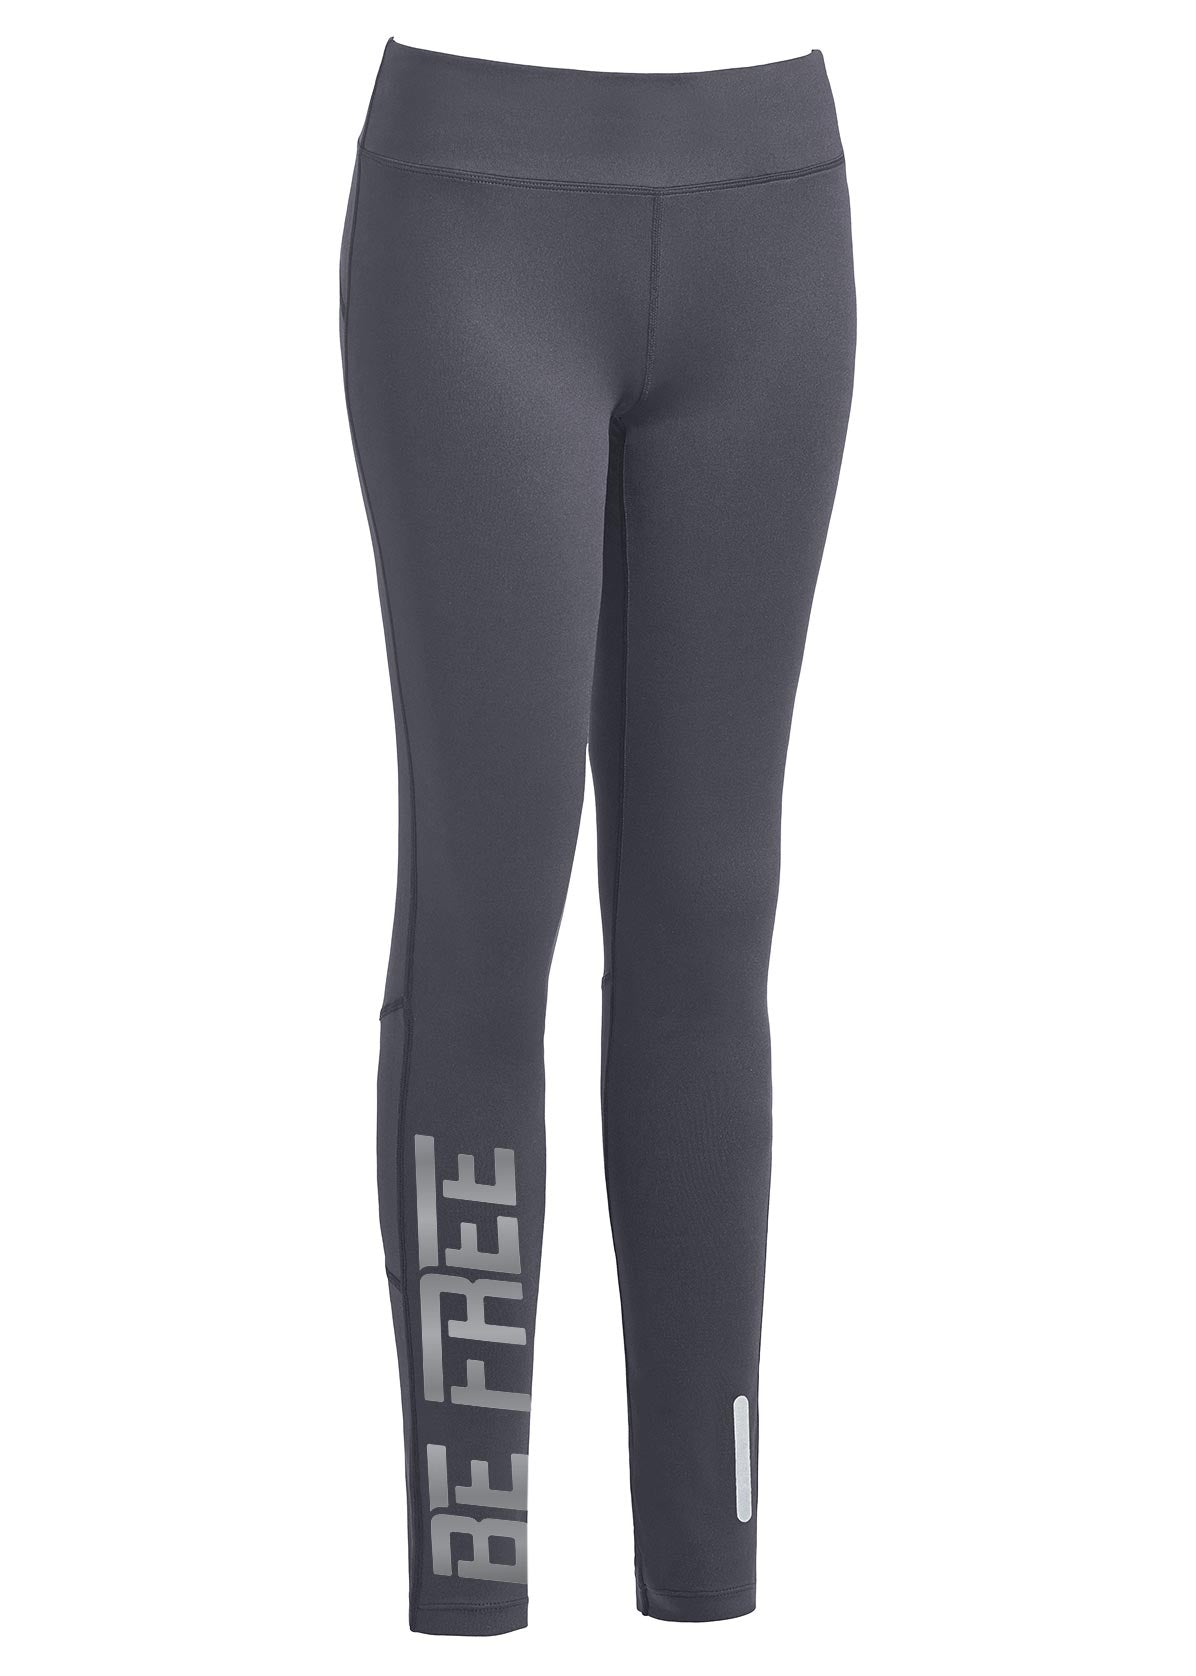 long leggings be free christian athletic apparel